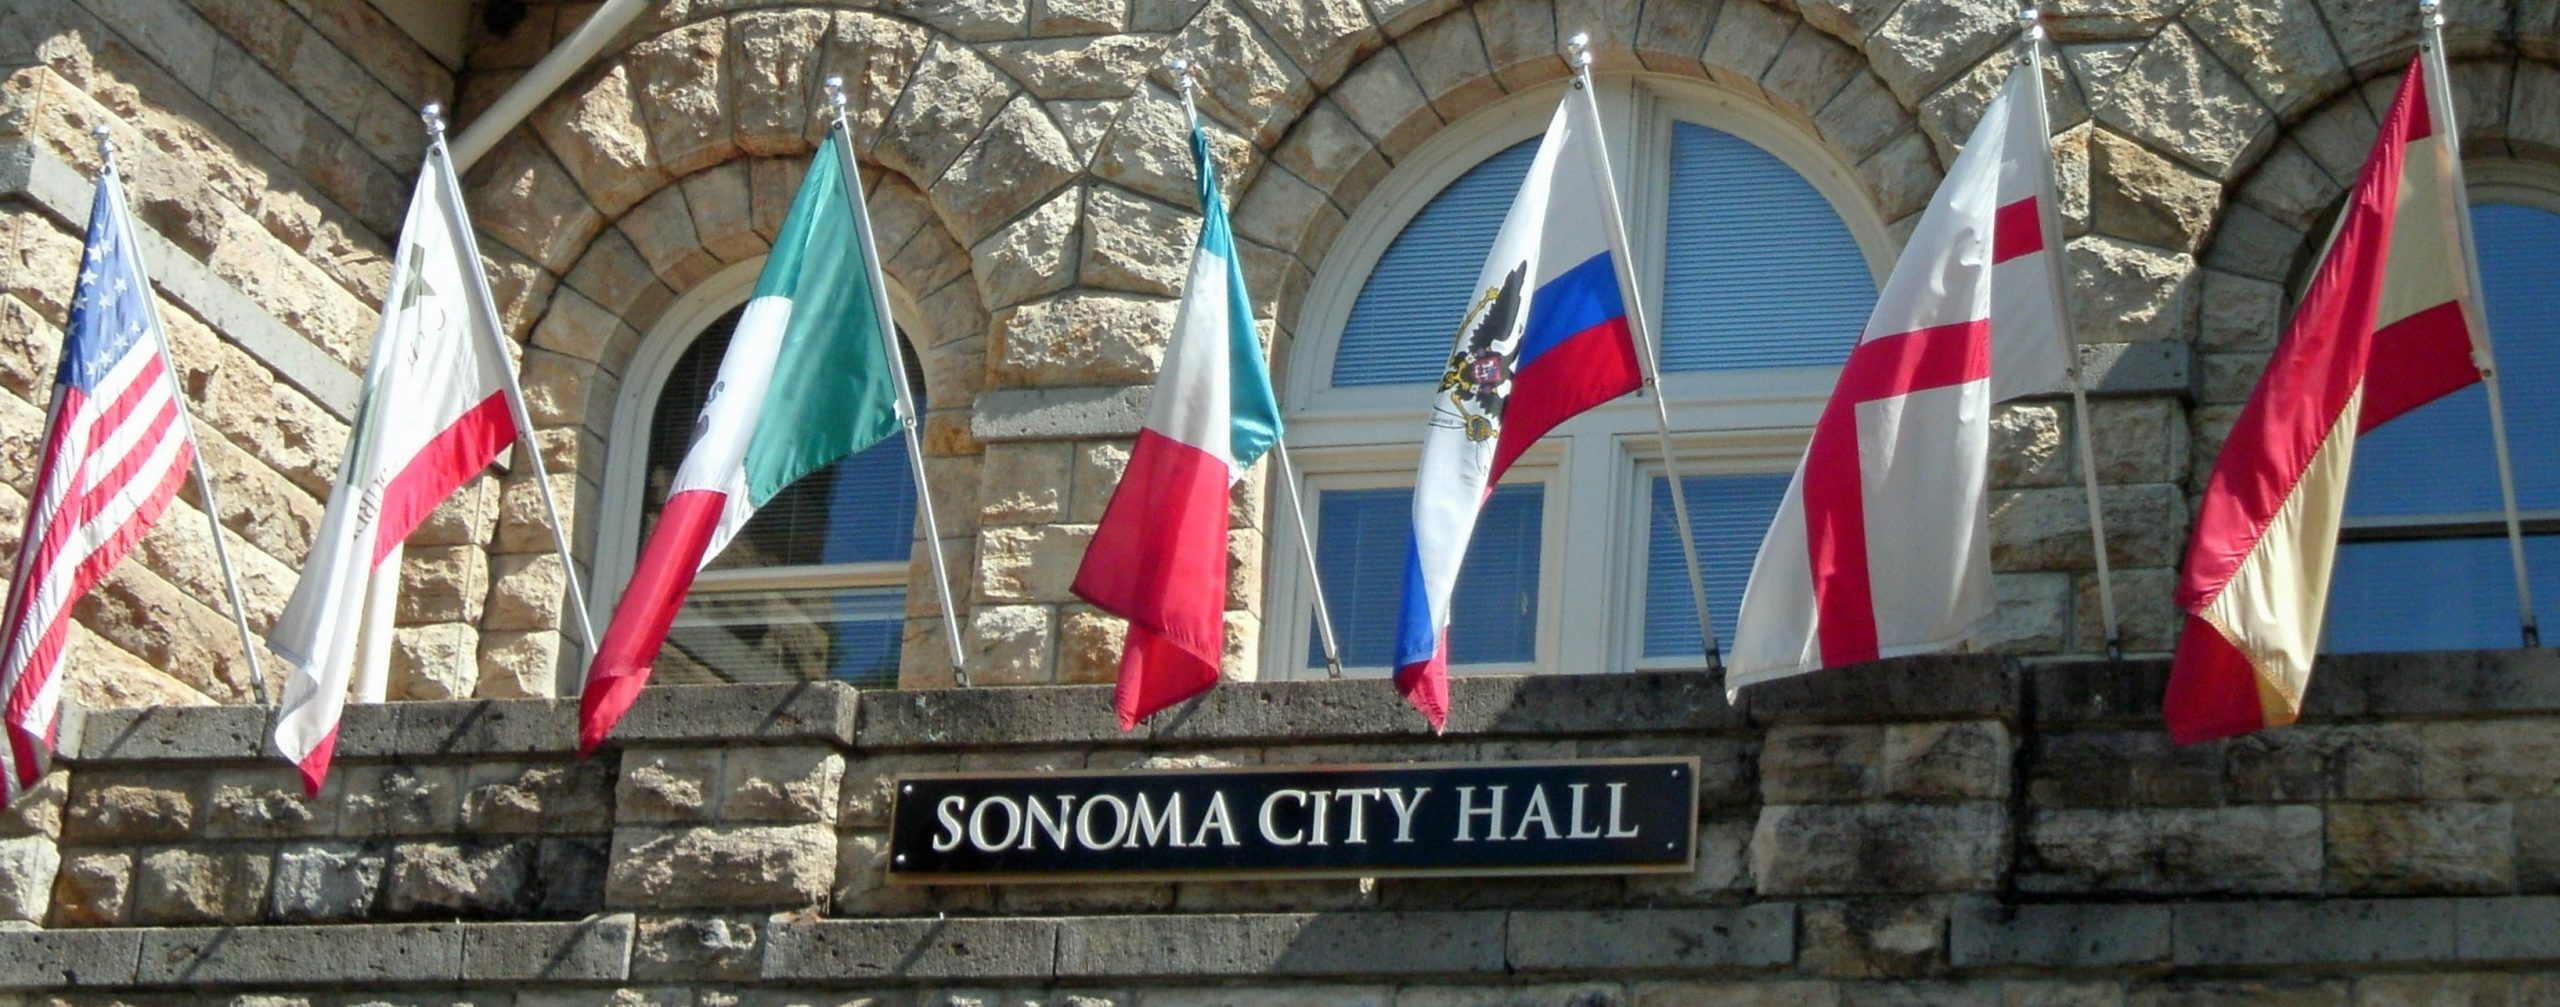 City Hall flags